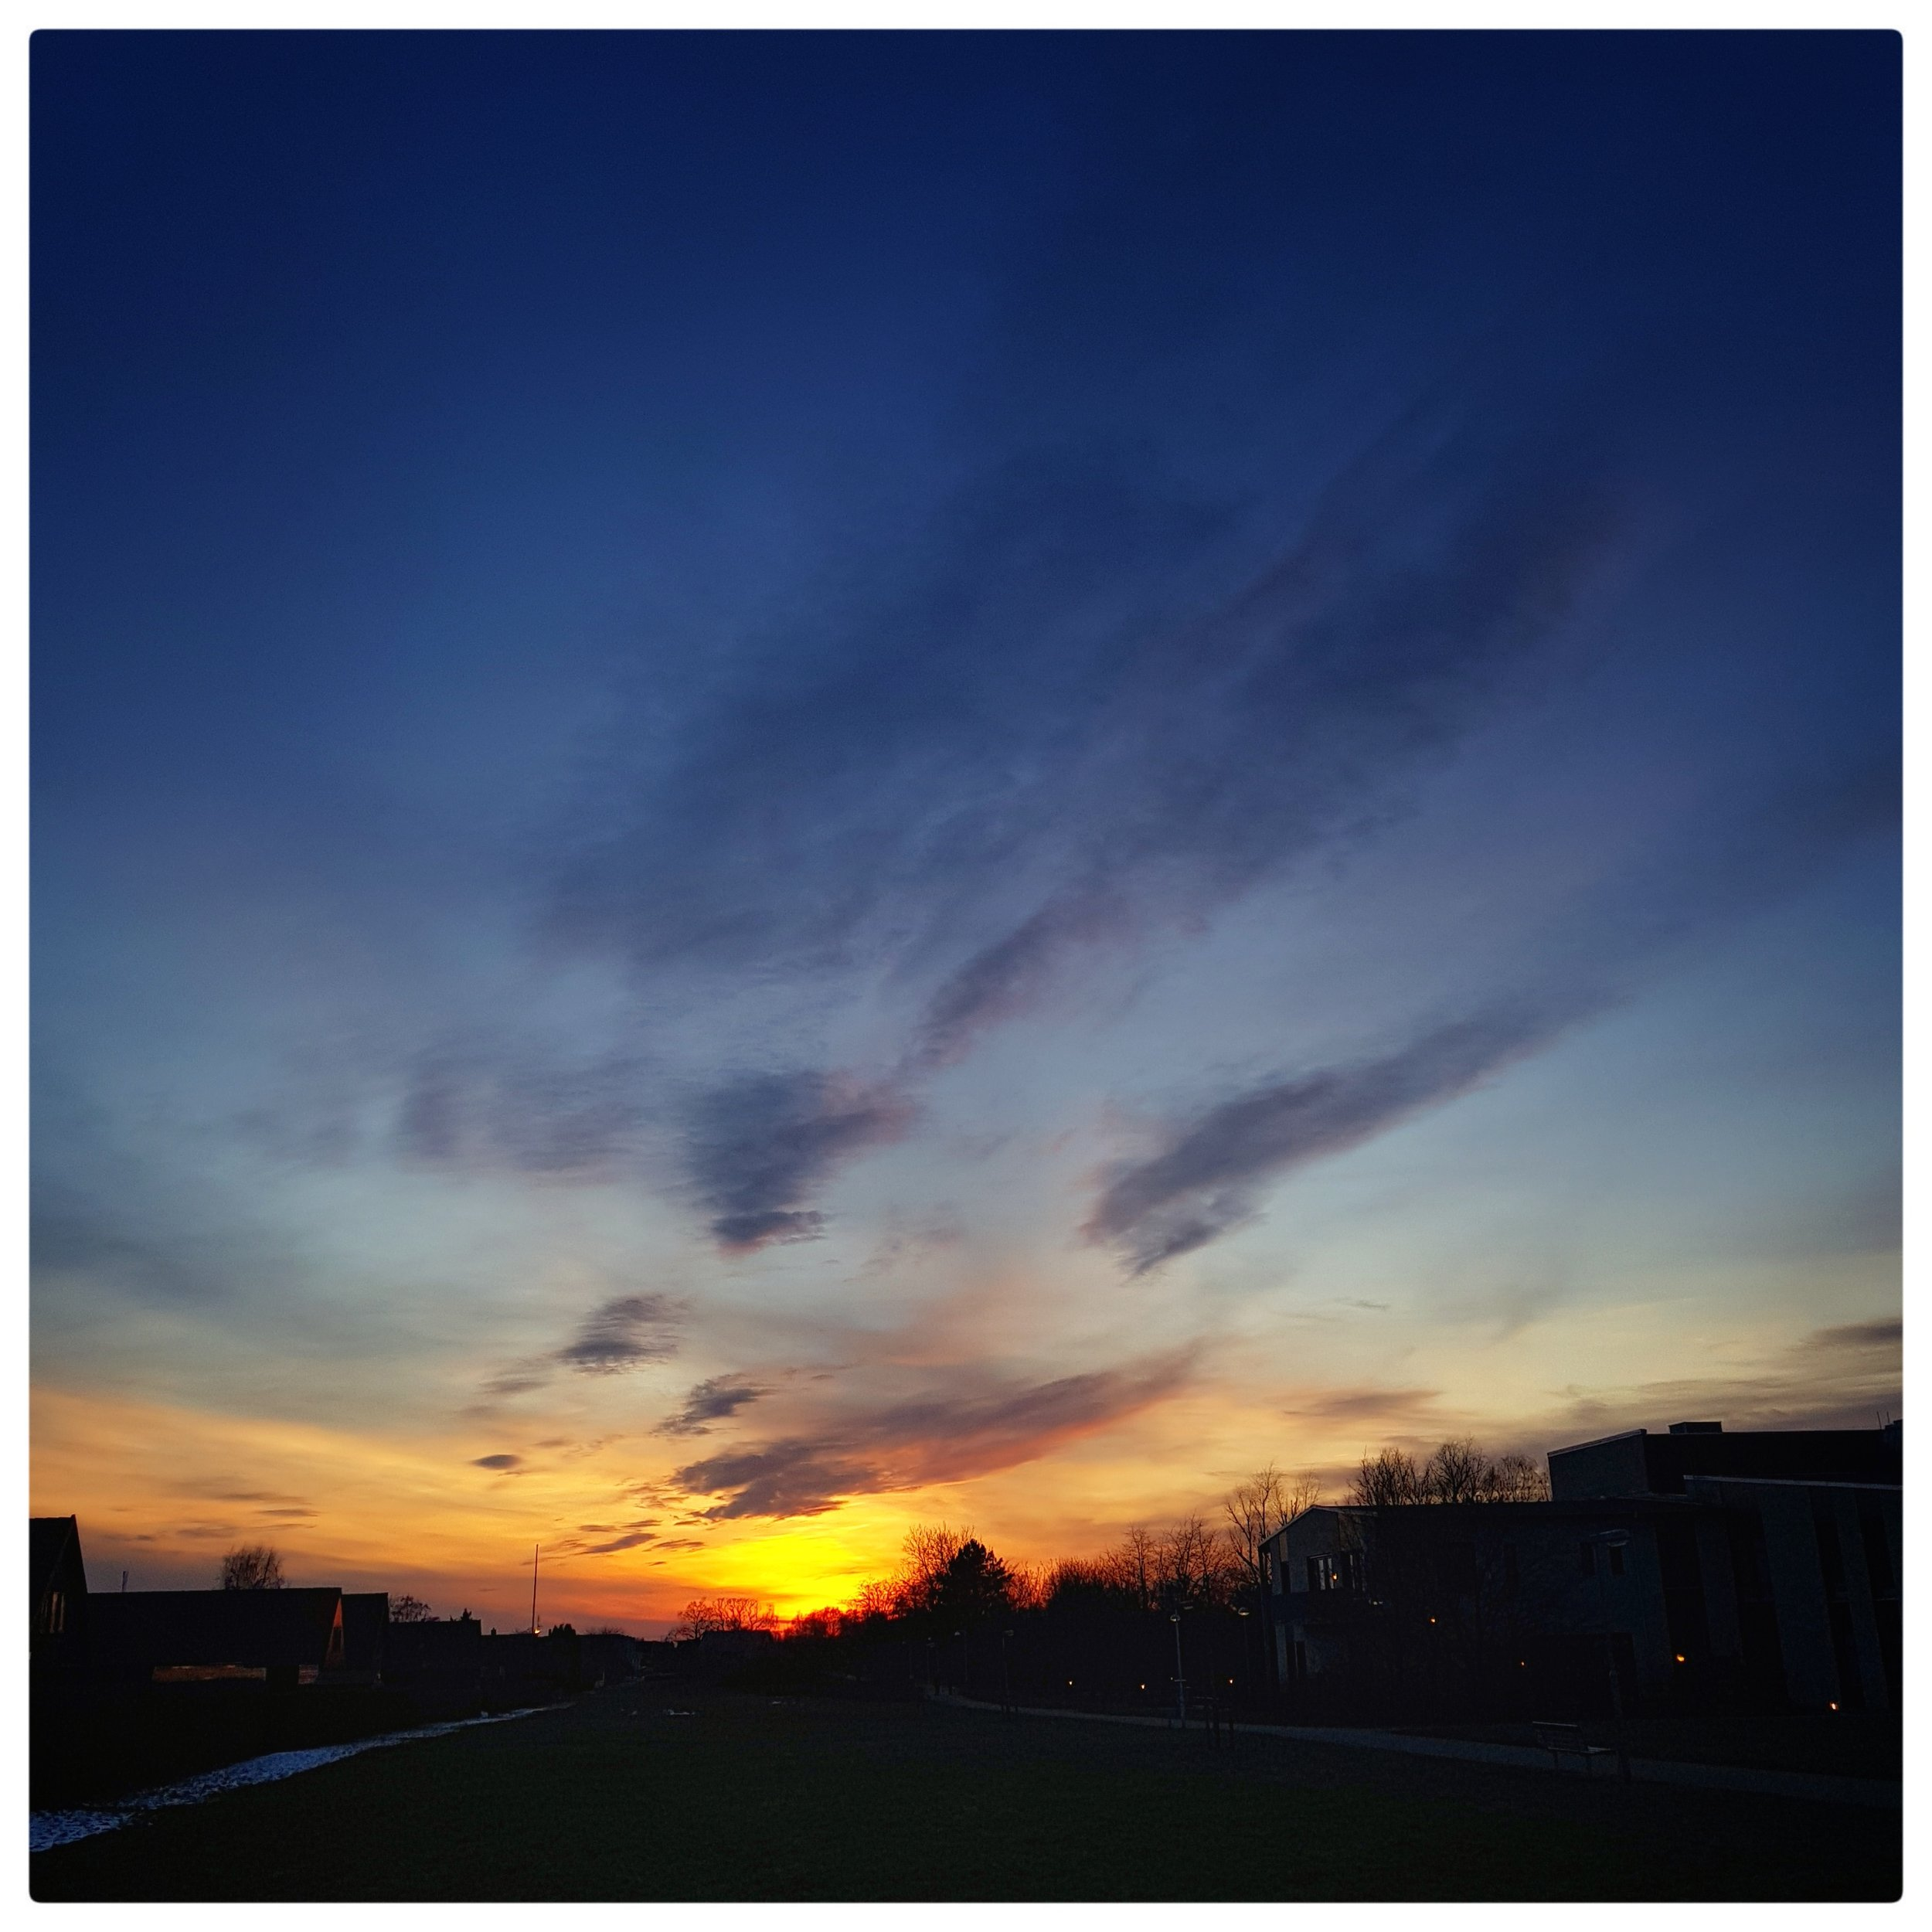 March 19 - Day 78: Last Light